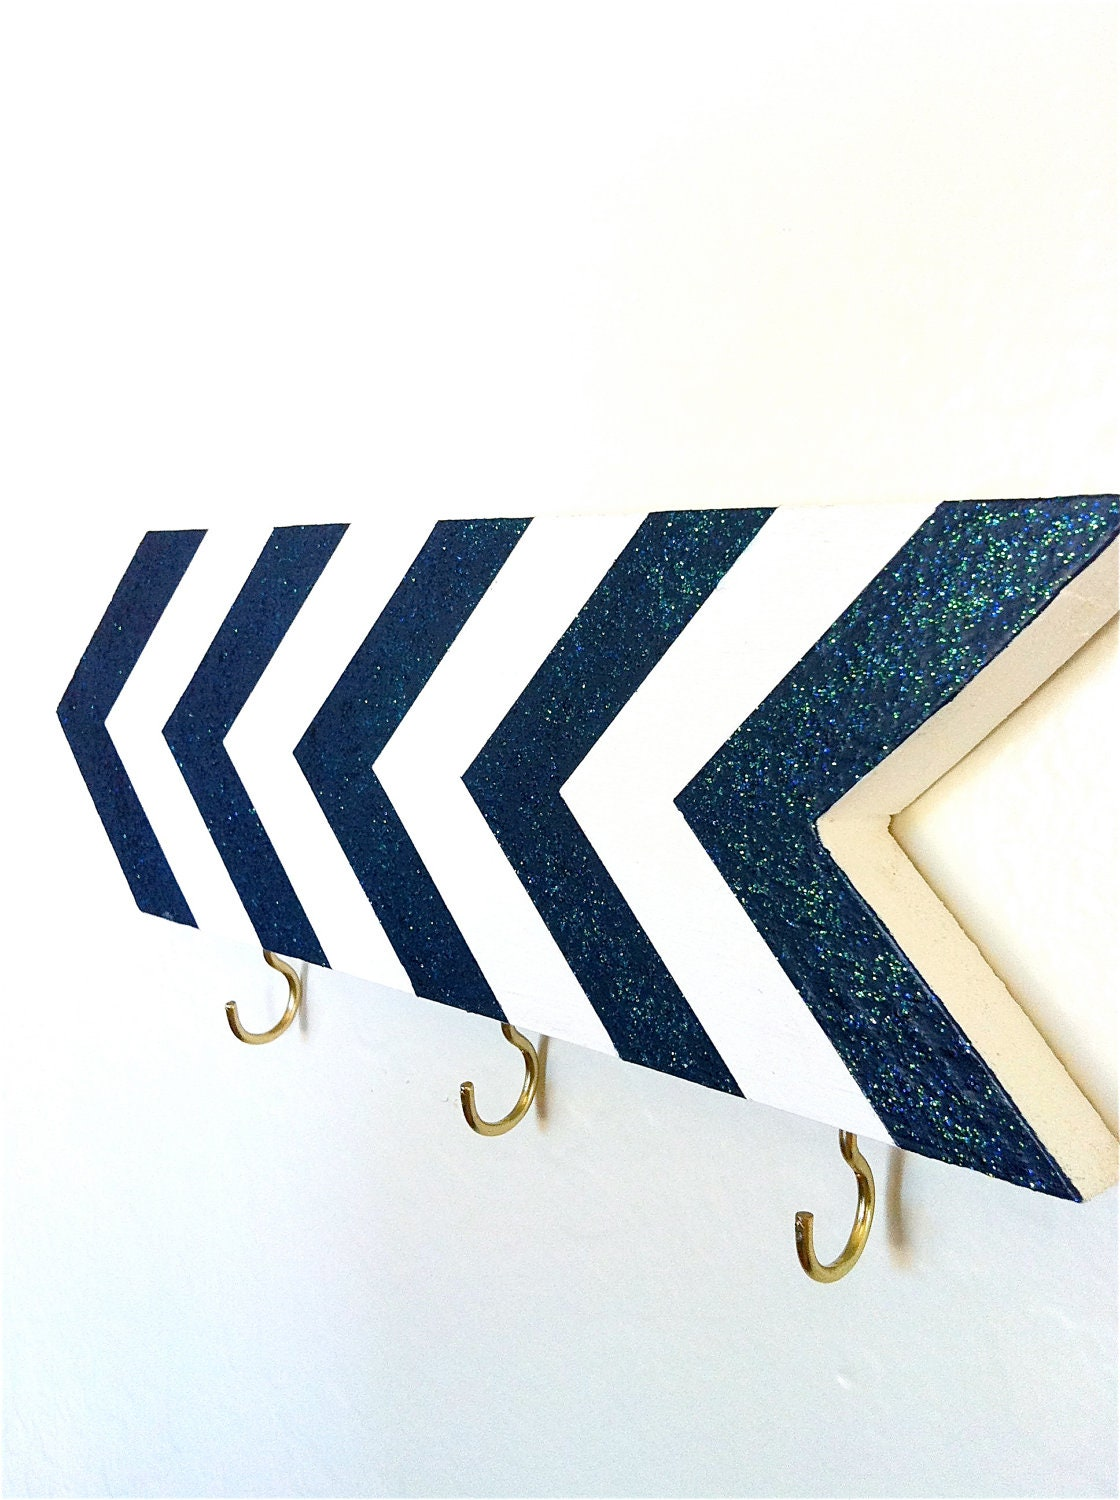 Wall hook - chevrons - navy blue sparkle glitter - entryway foyer - key holder - geometric - striped - patriotic nautical - oneeyeddog